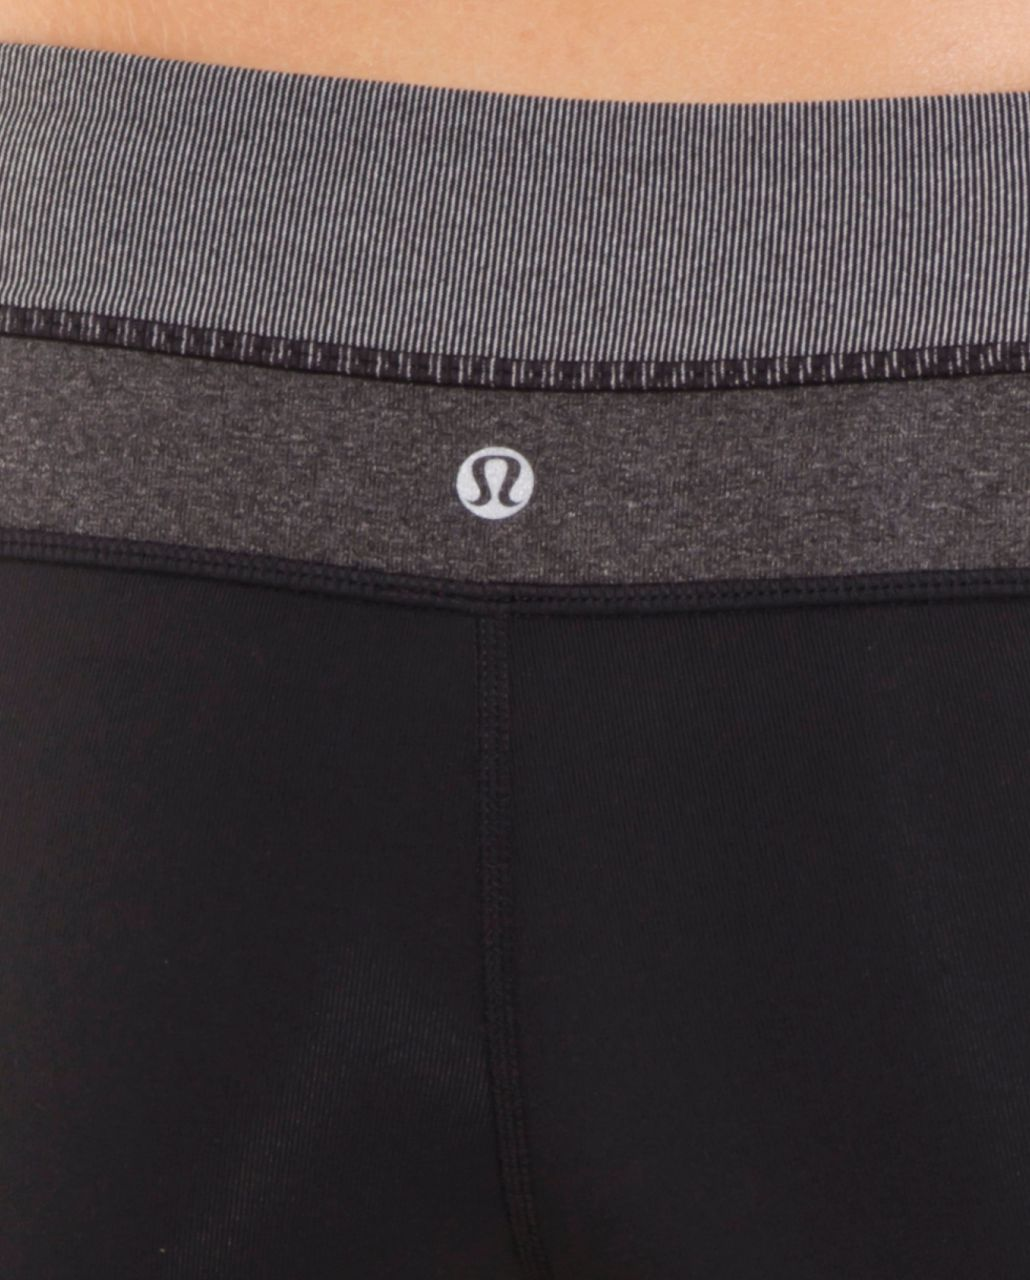 Lululemon Groove Pant (Tall) - Black /  White Black Microstripe /  Heathered Black